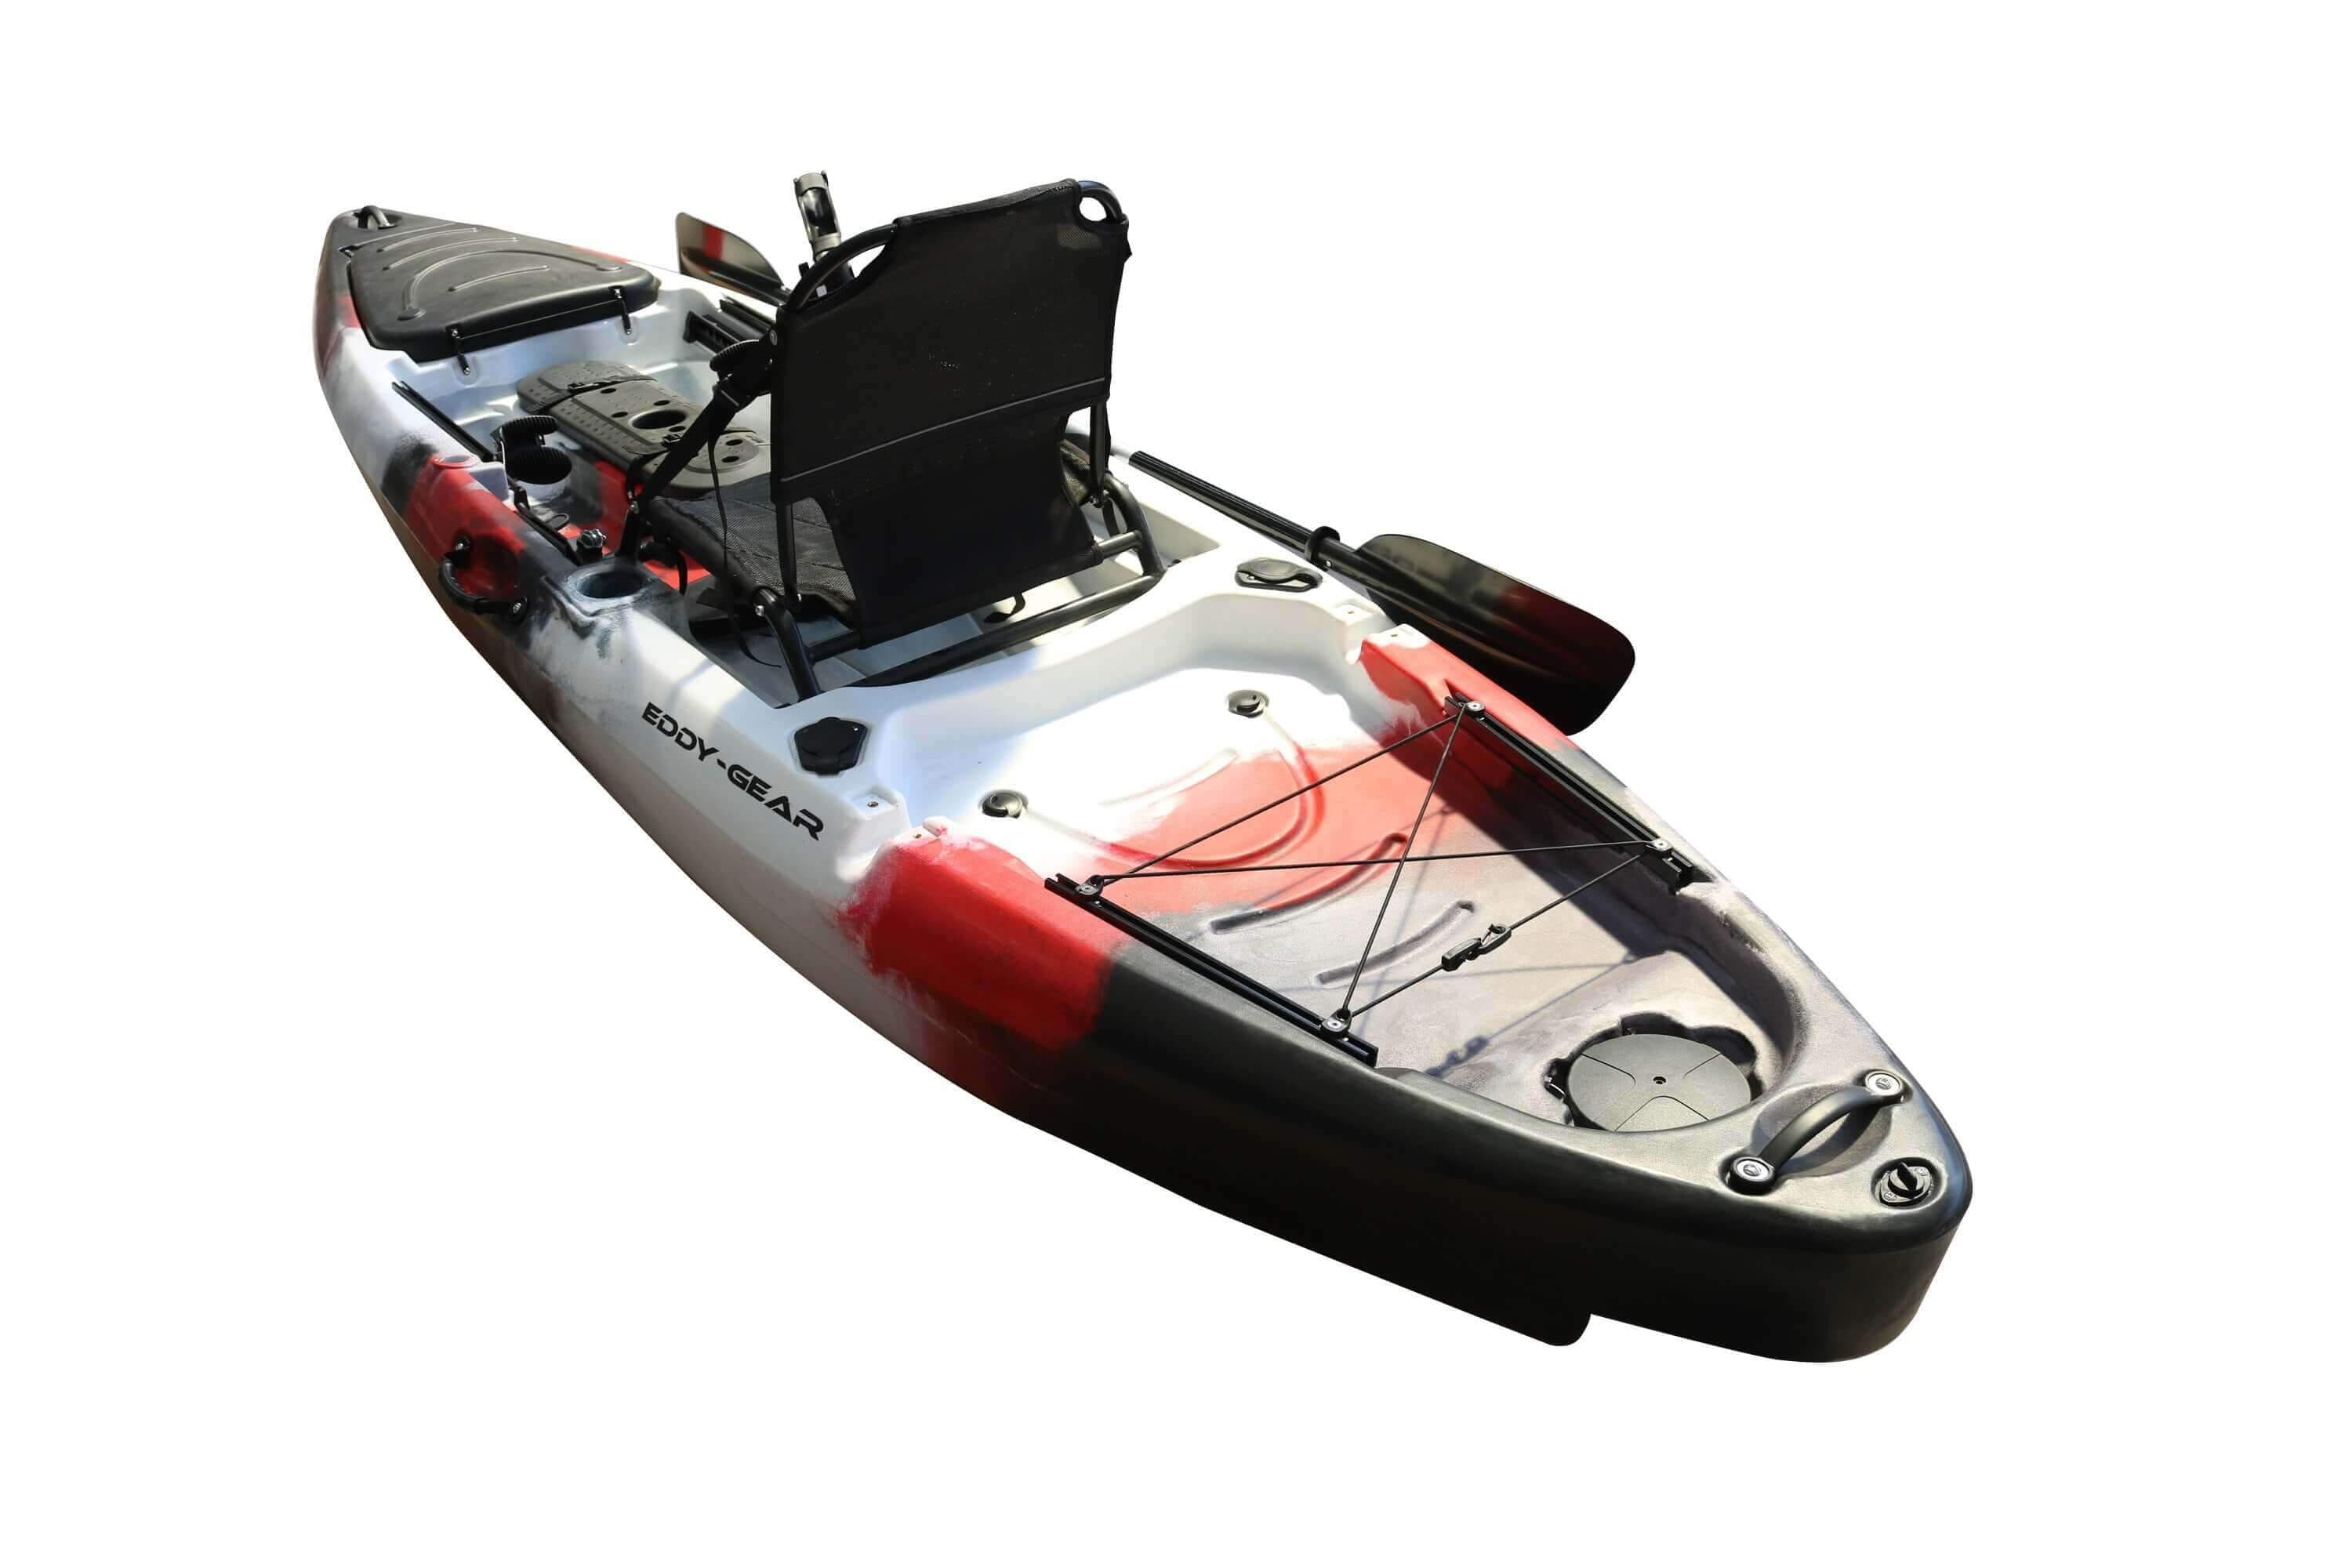 Trevally || Kayak for Fishing | Eddy-Gear.com-Eddy-Gear's Kayak for Fishing!Trevally || Kayak for Fishing | Eddy-Gear.com-Eddy-Gear's Kayak for Fishing!